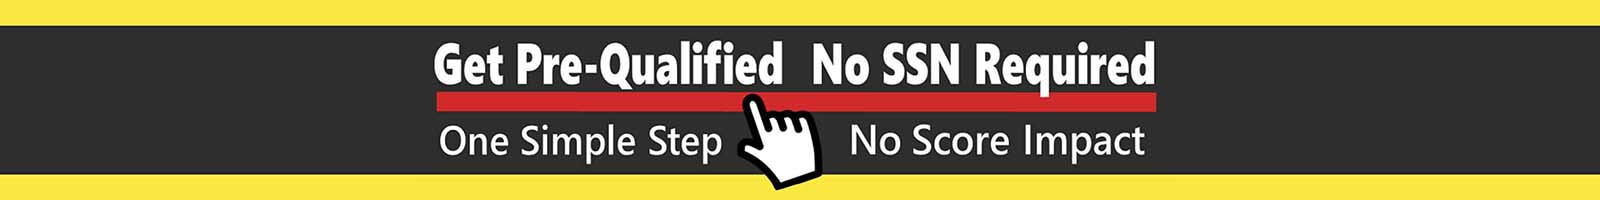 Get Pre-Qualified No SSN Required